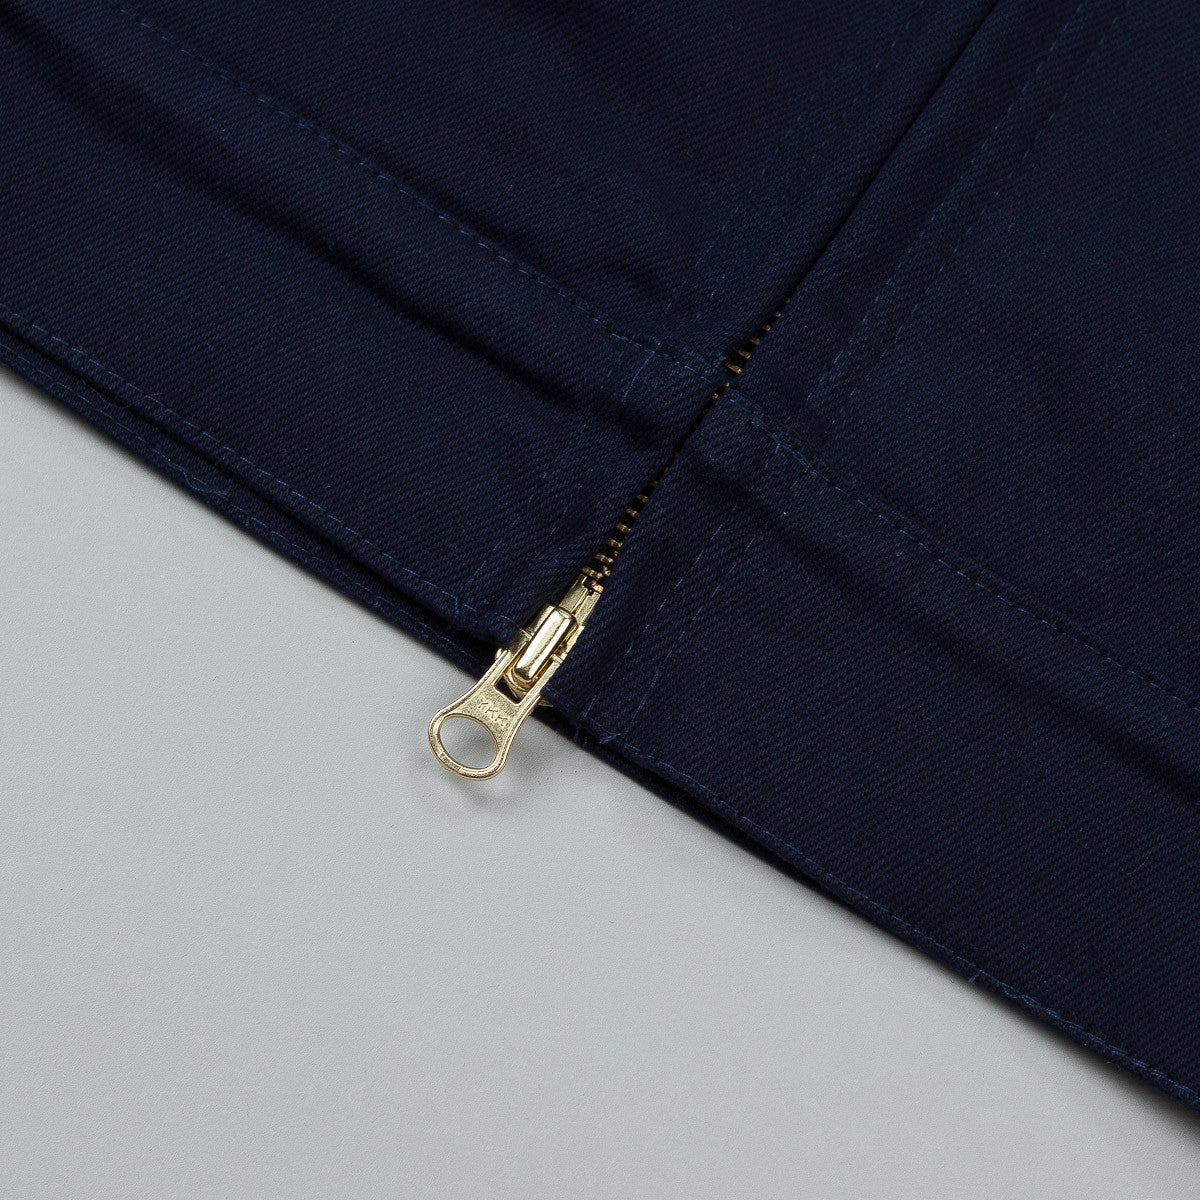 Polar PSC Ground Crew Jacket - Navy / White